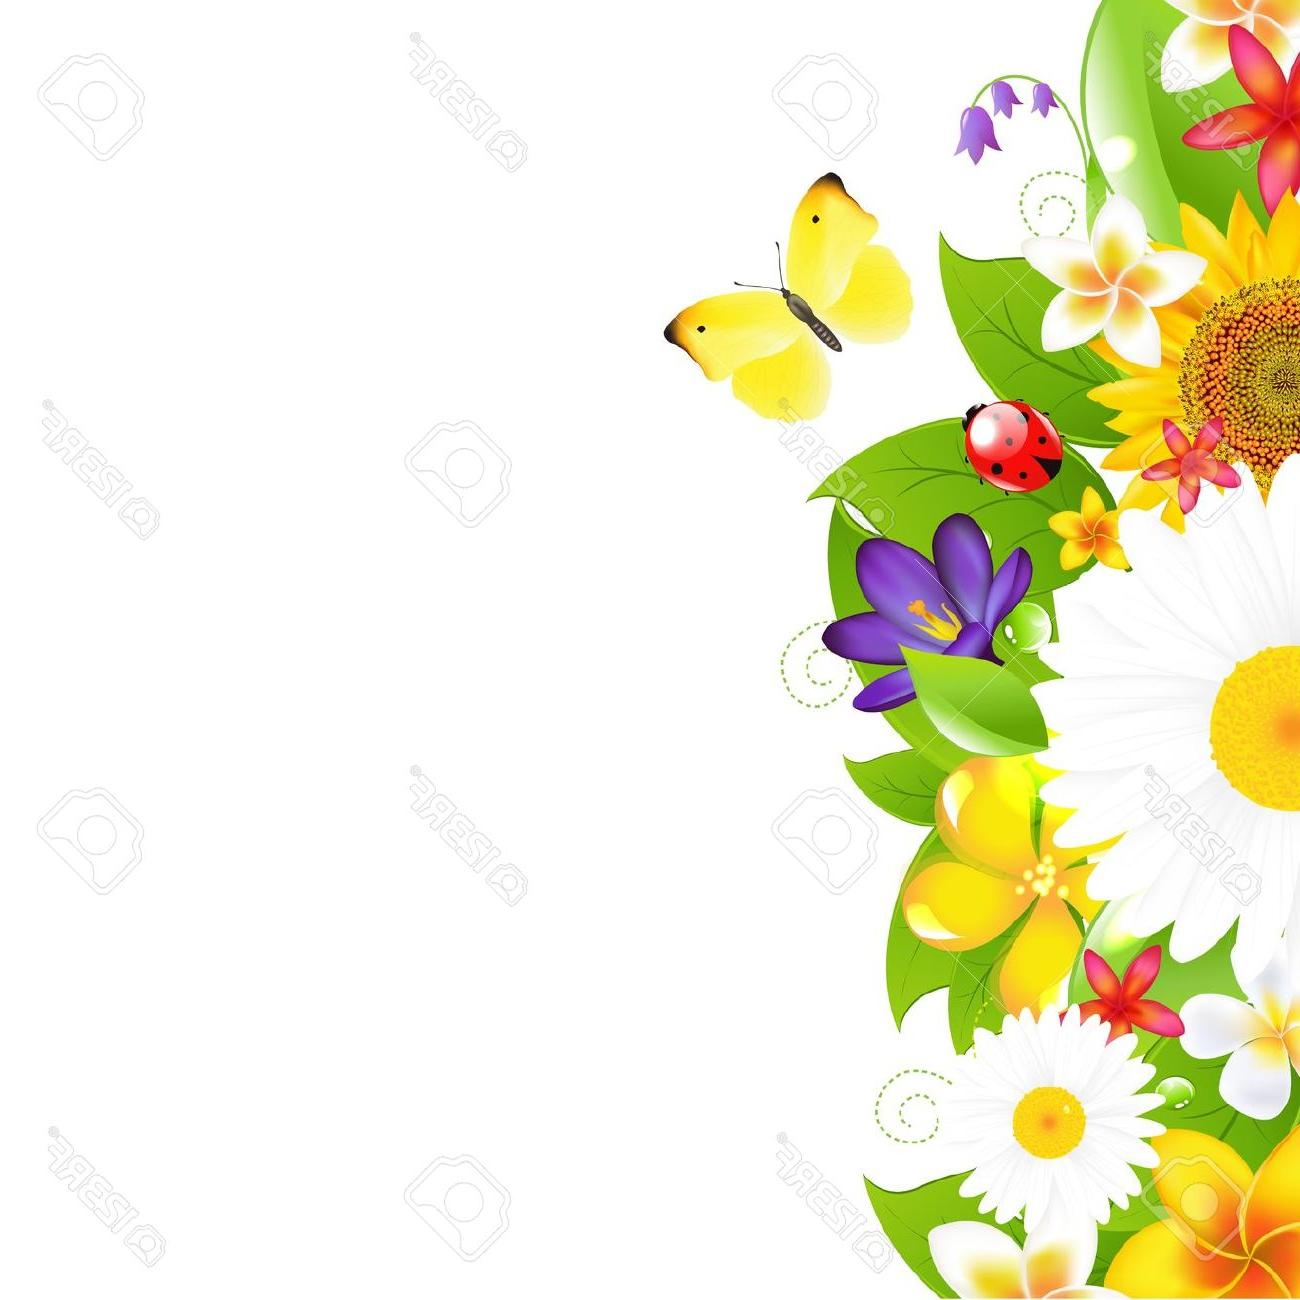 1300x1300 Best Hd Summer Flowers And Leaf Border Stock Vector Flower Frame